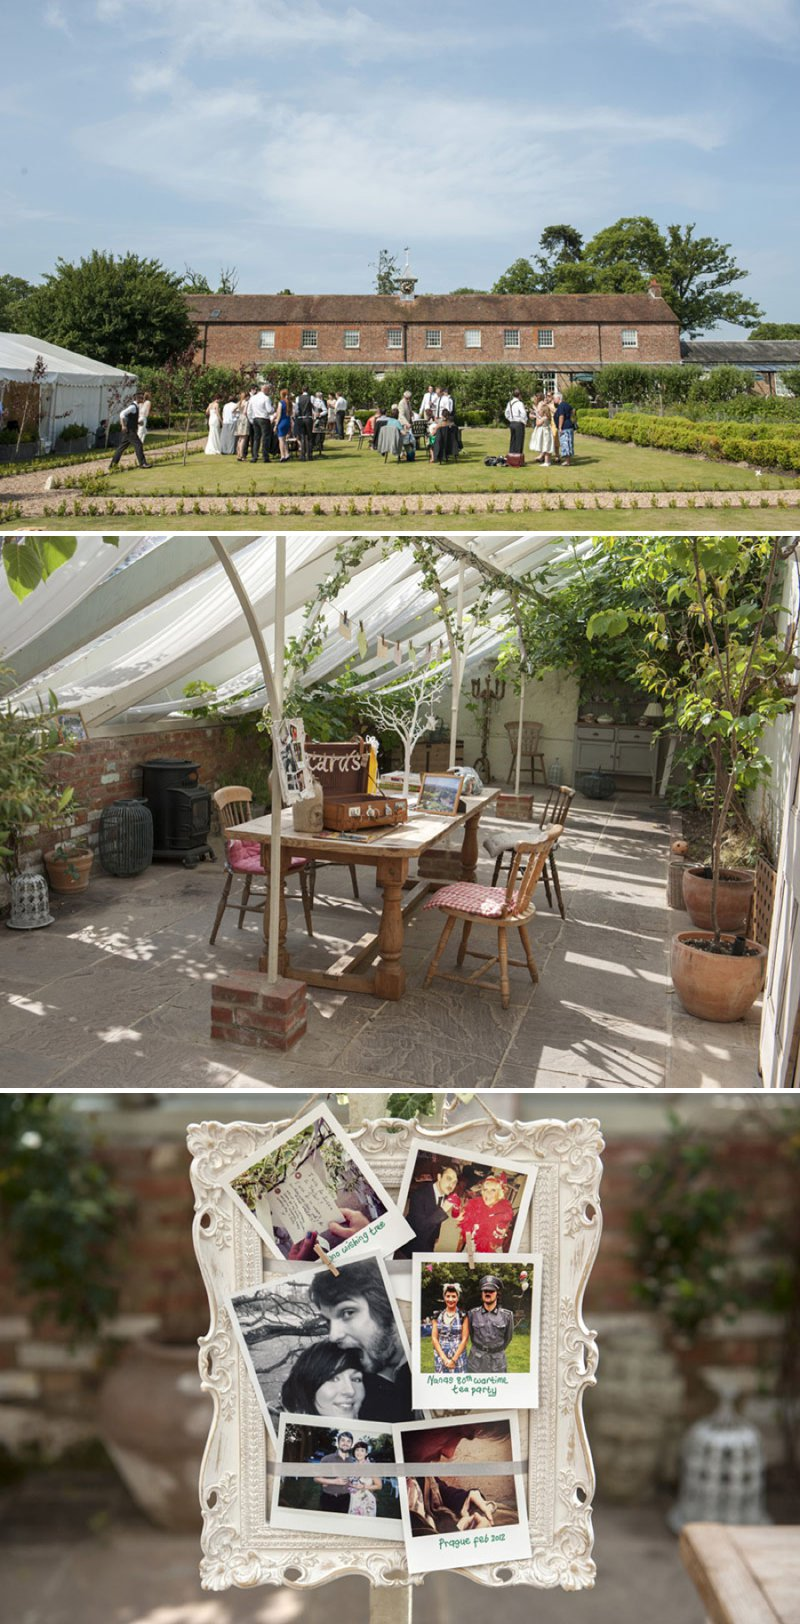 Vintage Inspired Wedding At The Secret Garden Kent With Bride In Pronovias Gown With Peony Bouquets Groom In Navy Suit From Next With Fun And Quirky Wedding Photography From Ben Wetherall 6